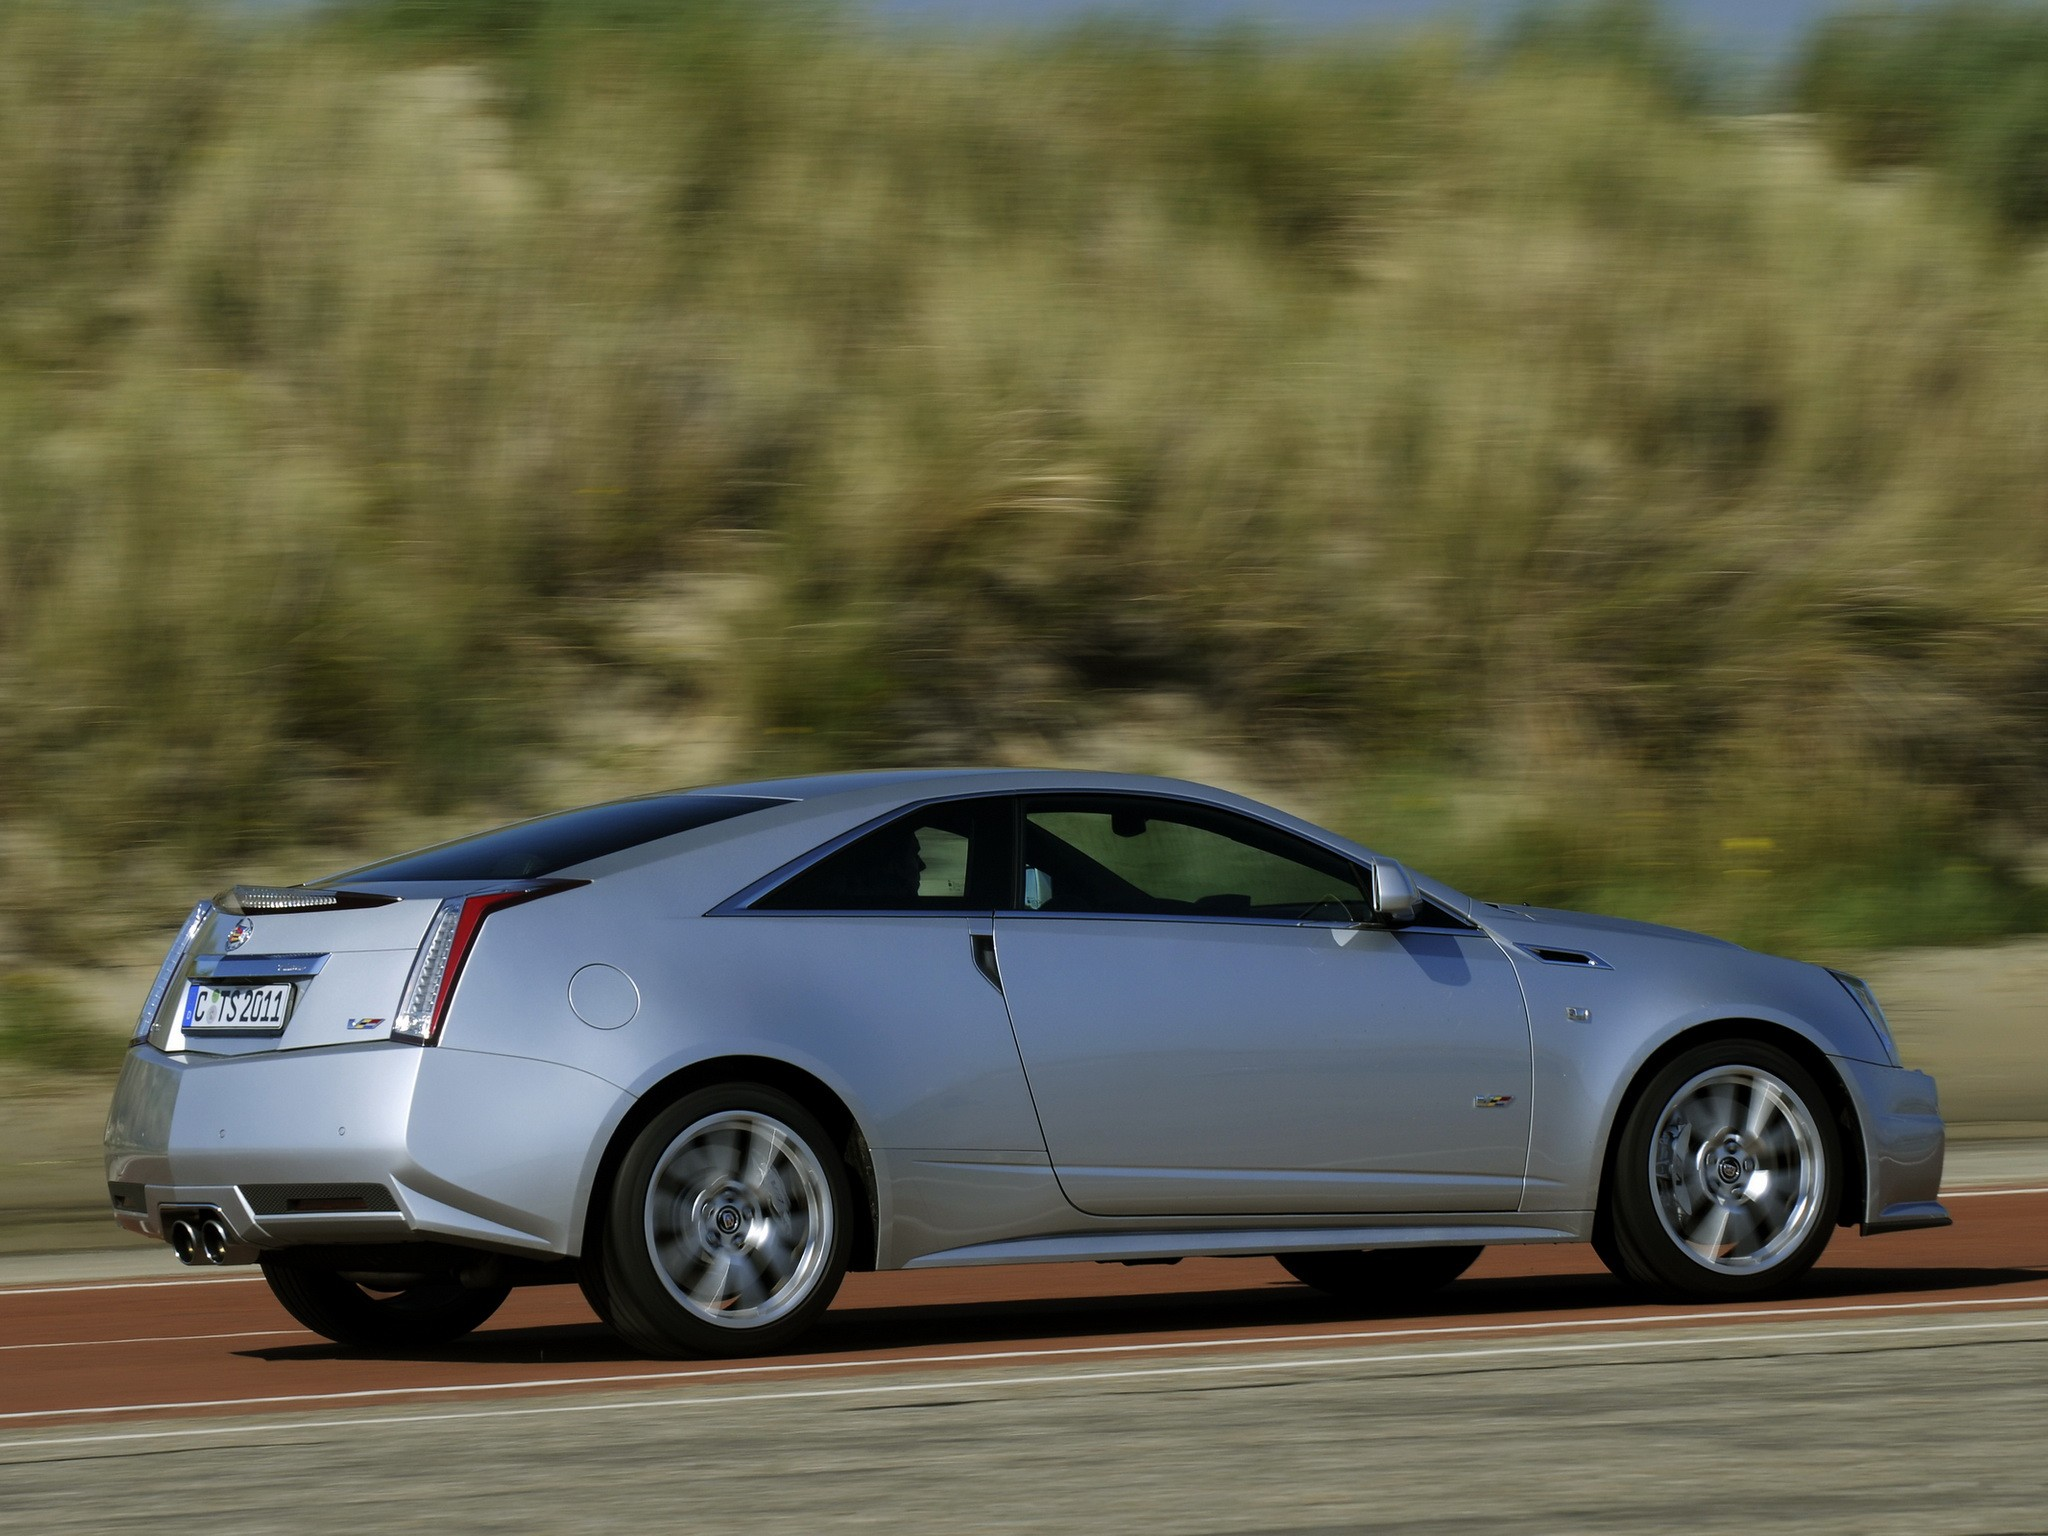 Cadillac cts v coupe specs 2012 2013 2014 2015 2016 - Cadillac cts v coupe specs ...